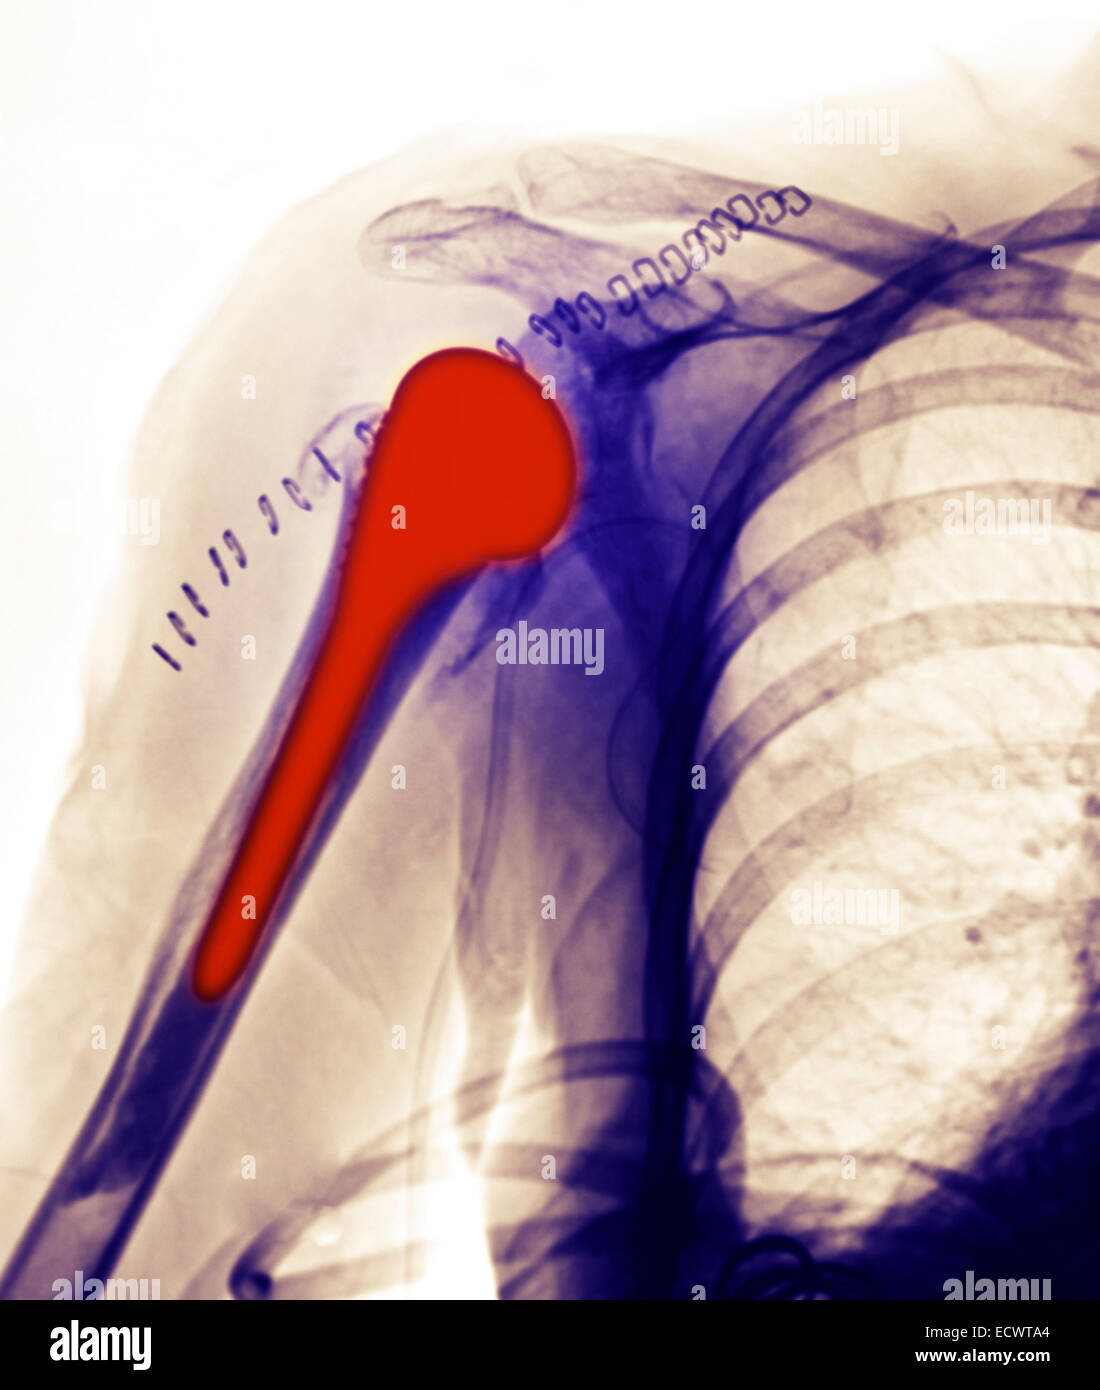 x-ray showing a shoulder replacement. - Stock Image